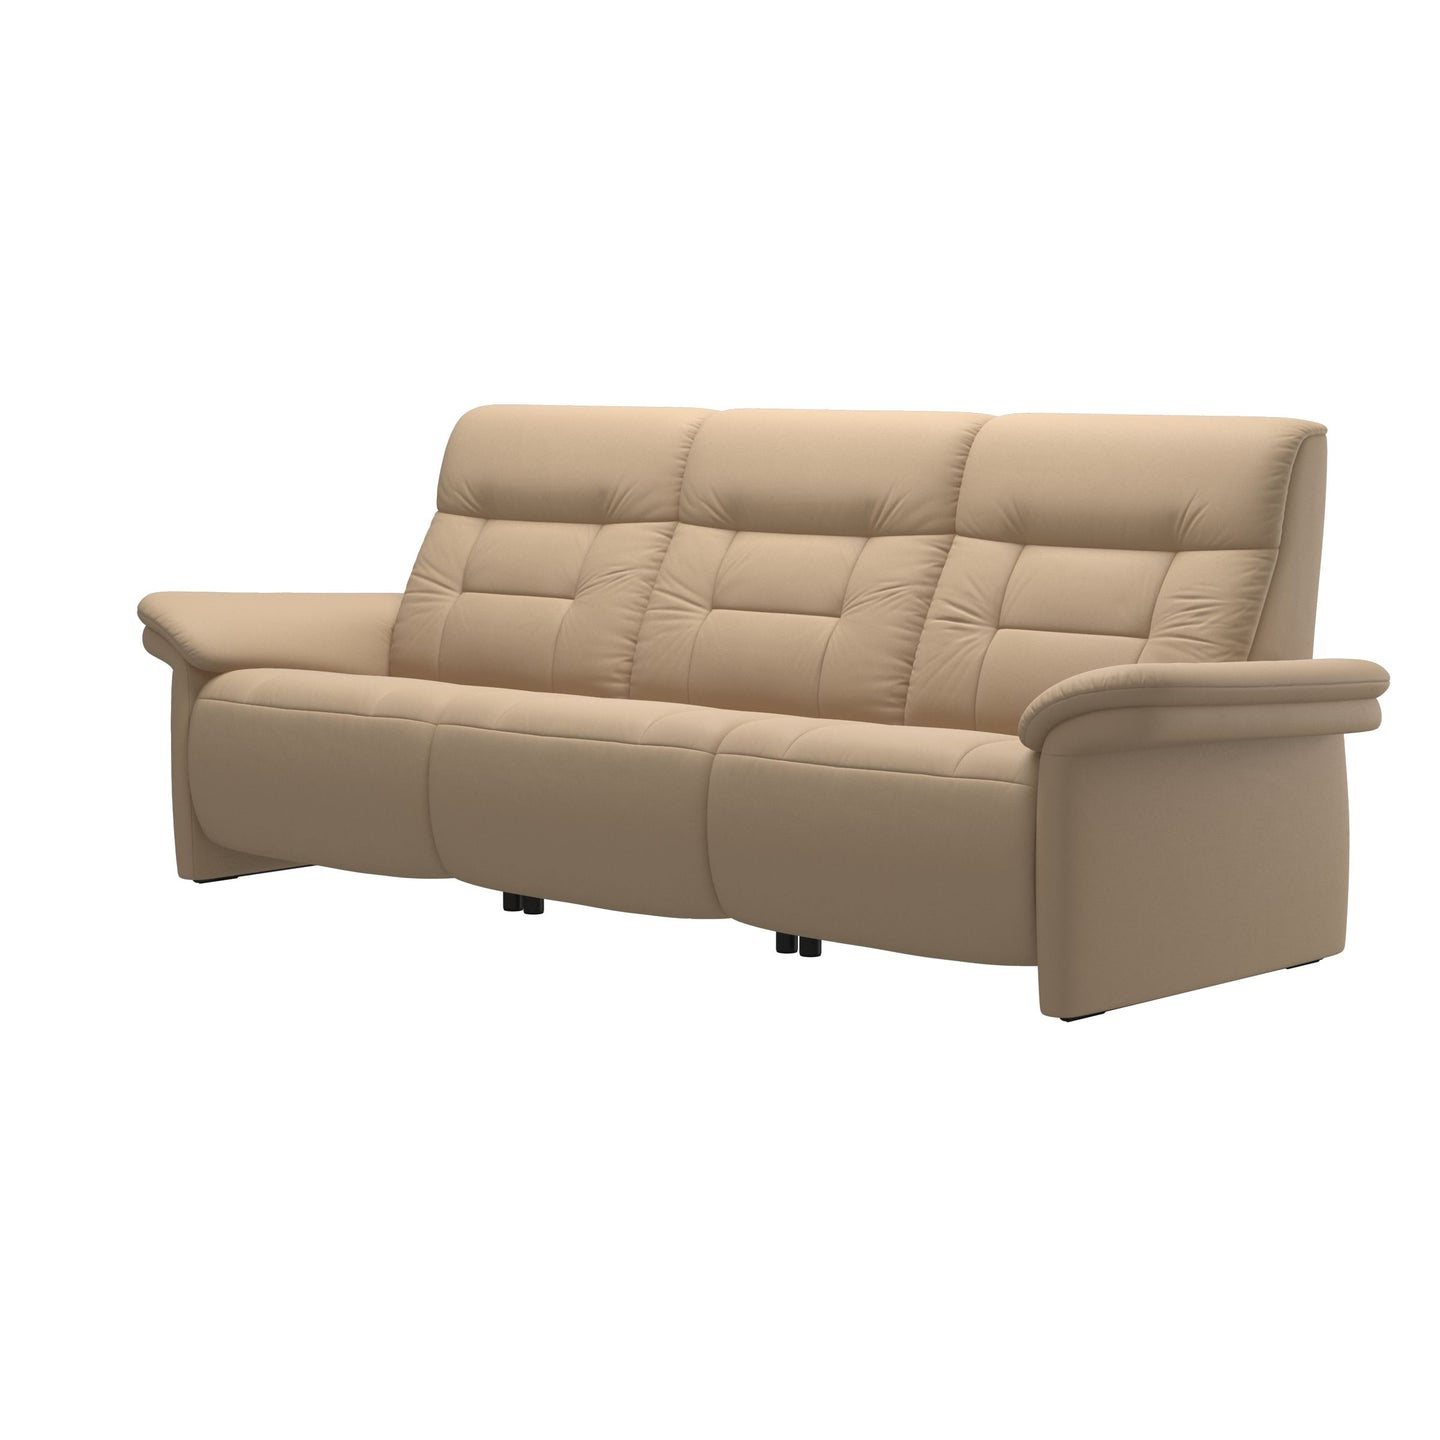 Stressless® Mary arm upholstered 3 seater